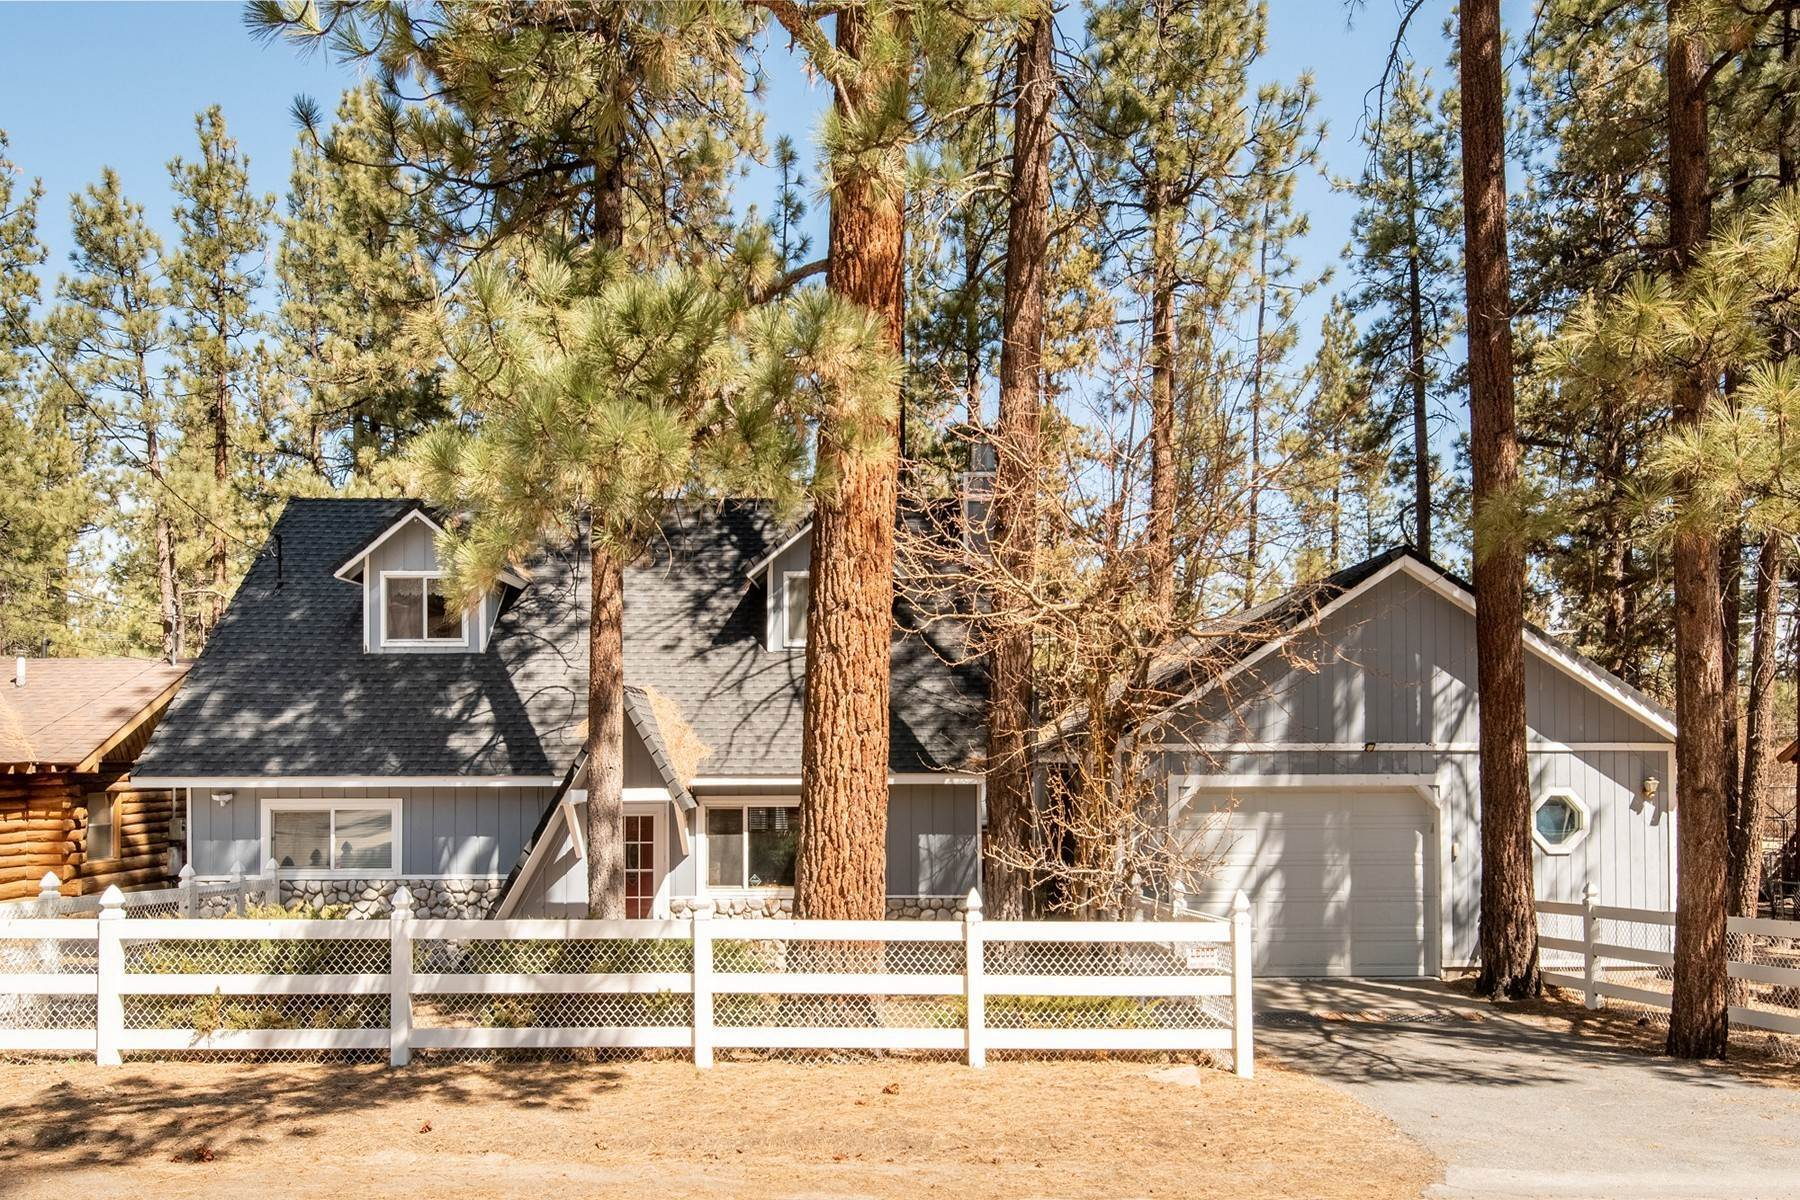 Single Family Homes for Sale at 653 Barrett Way, Big Bear City, California 92314 653 Barrett Way Big Bear City, California 92314 United States